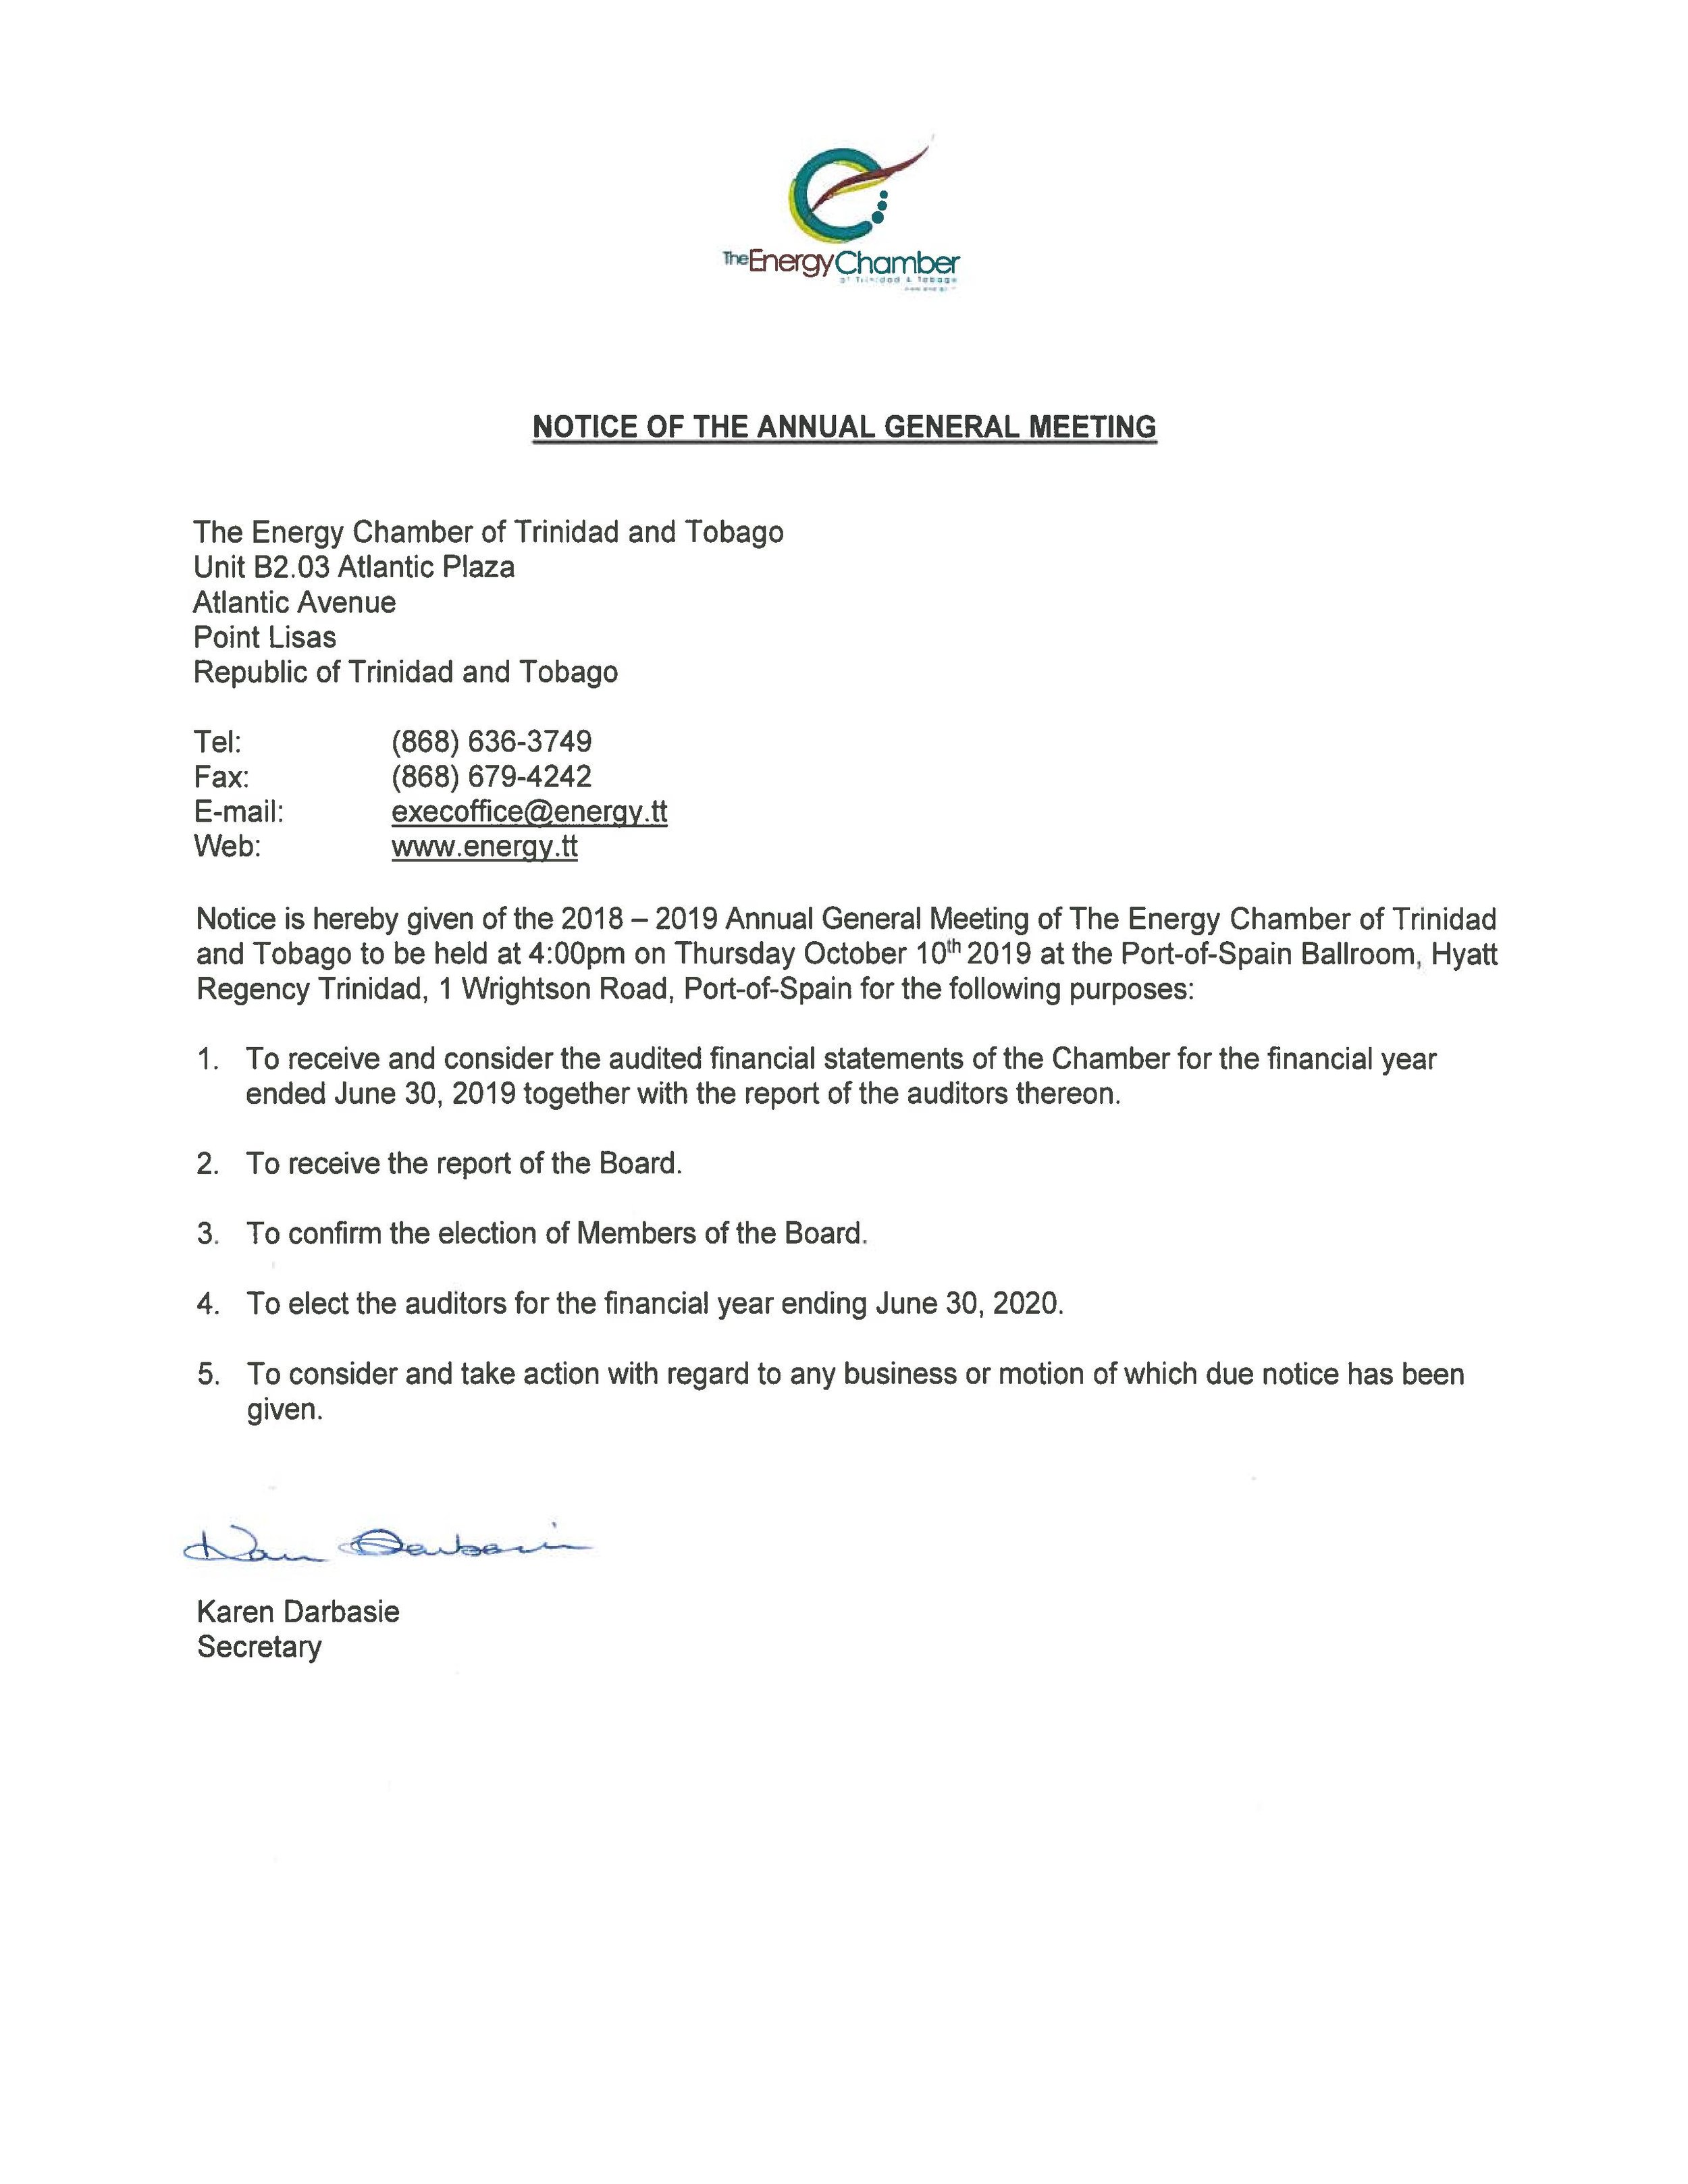 Notice of 2018-19 Annual General Meeting-page-001.jpg